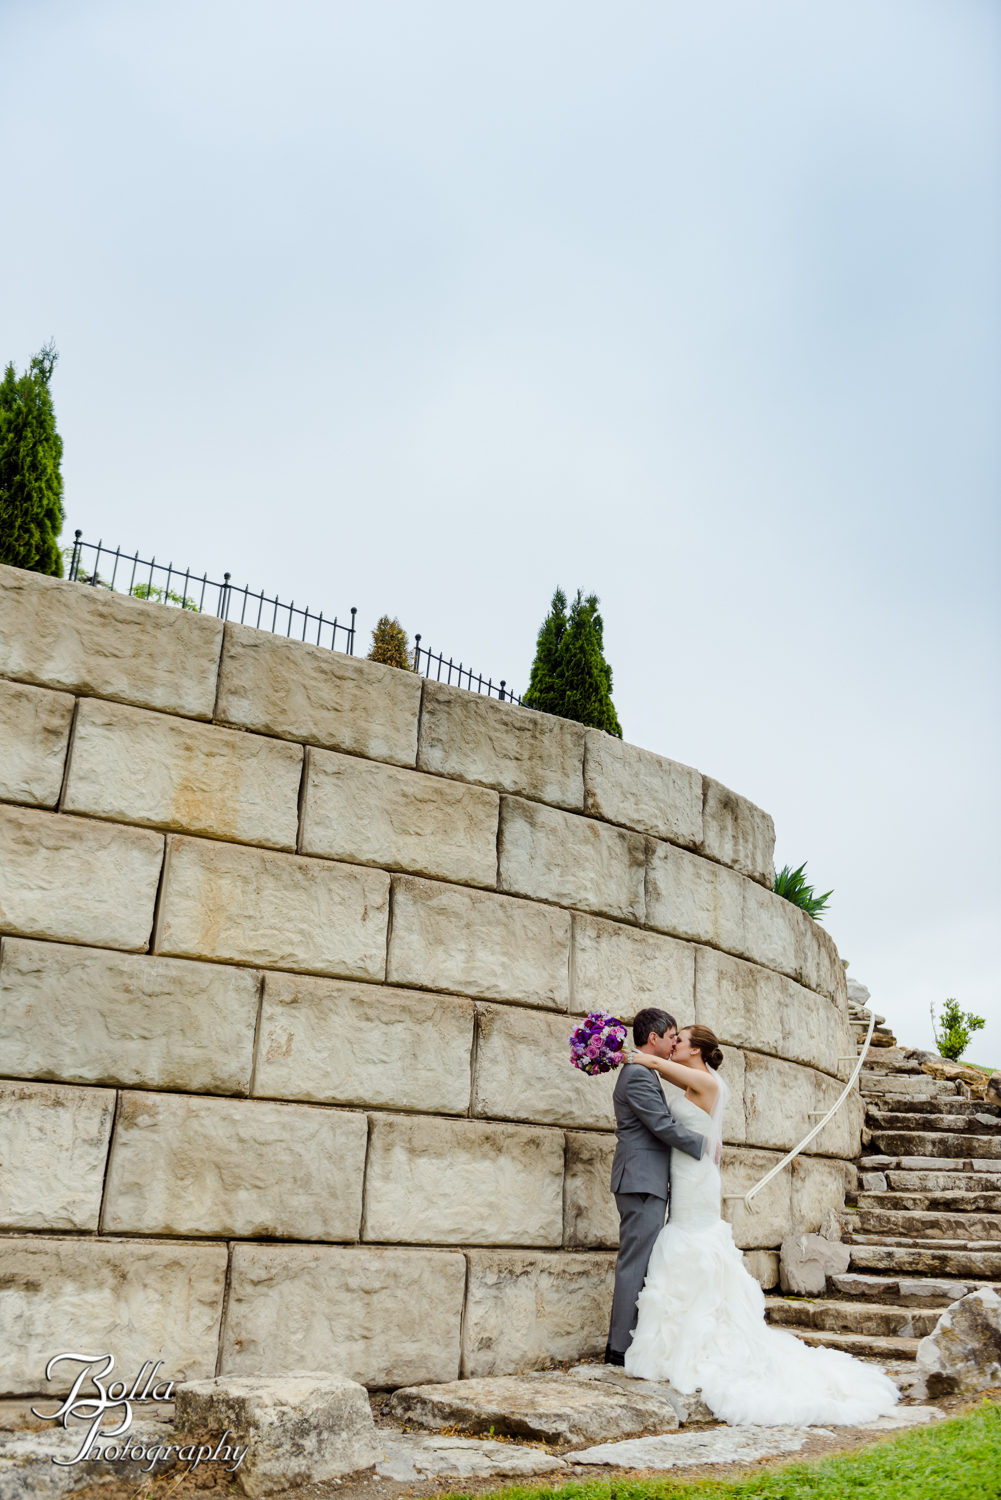 Bolla_Photography_St_Louis_wedding_photographer_Villa_Maire_Winery-0001.jpg